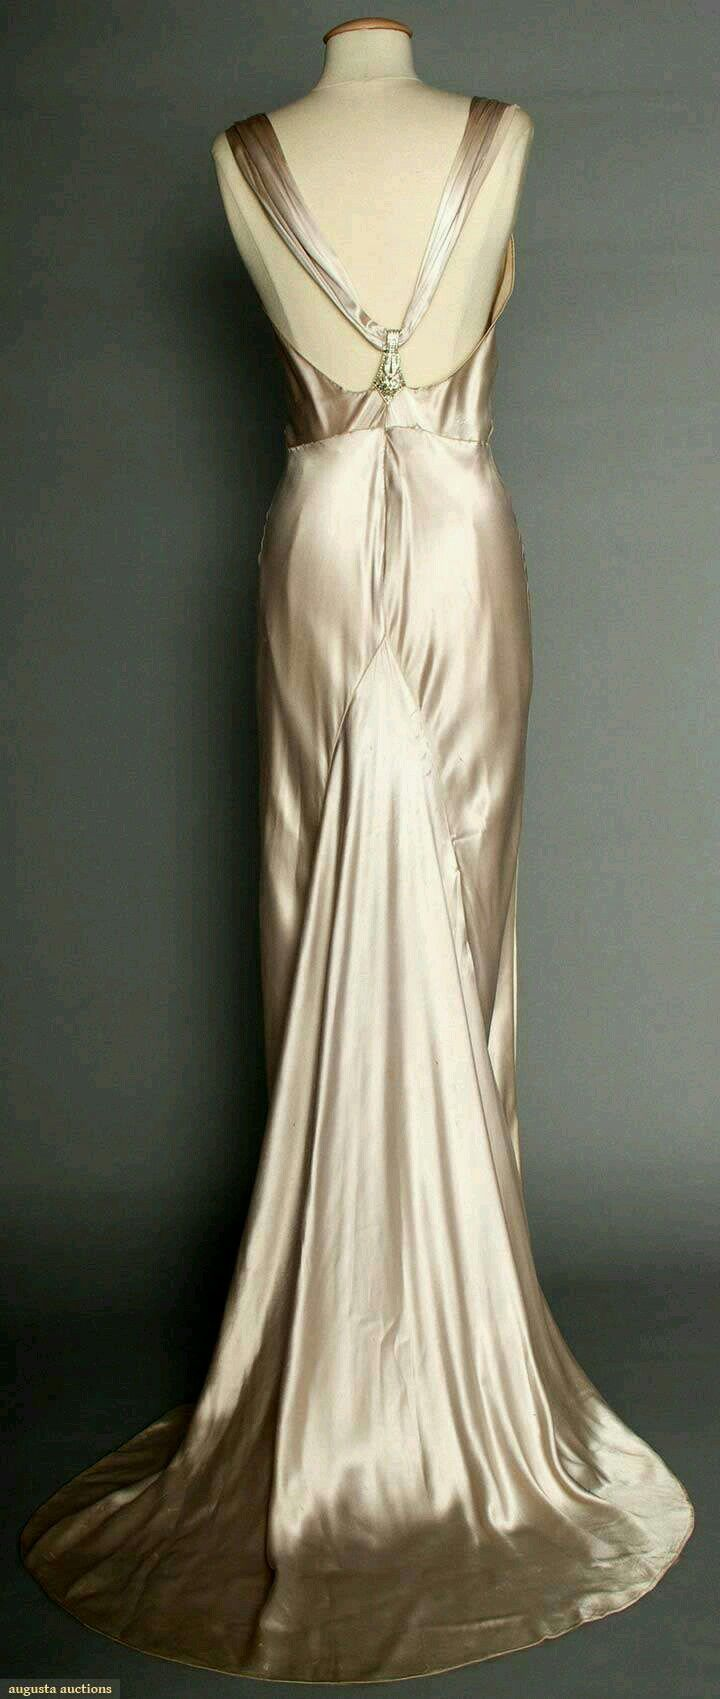 1930's Silver Satin Evening Gown 2